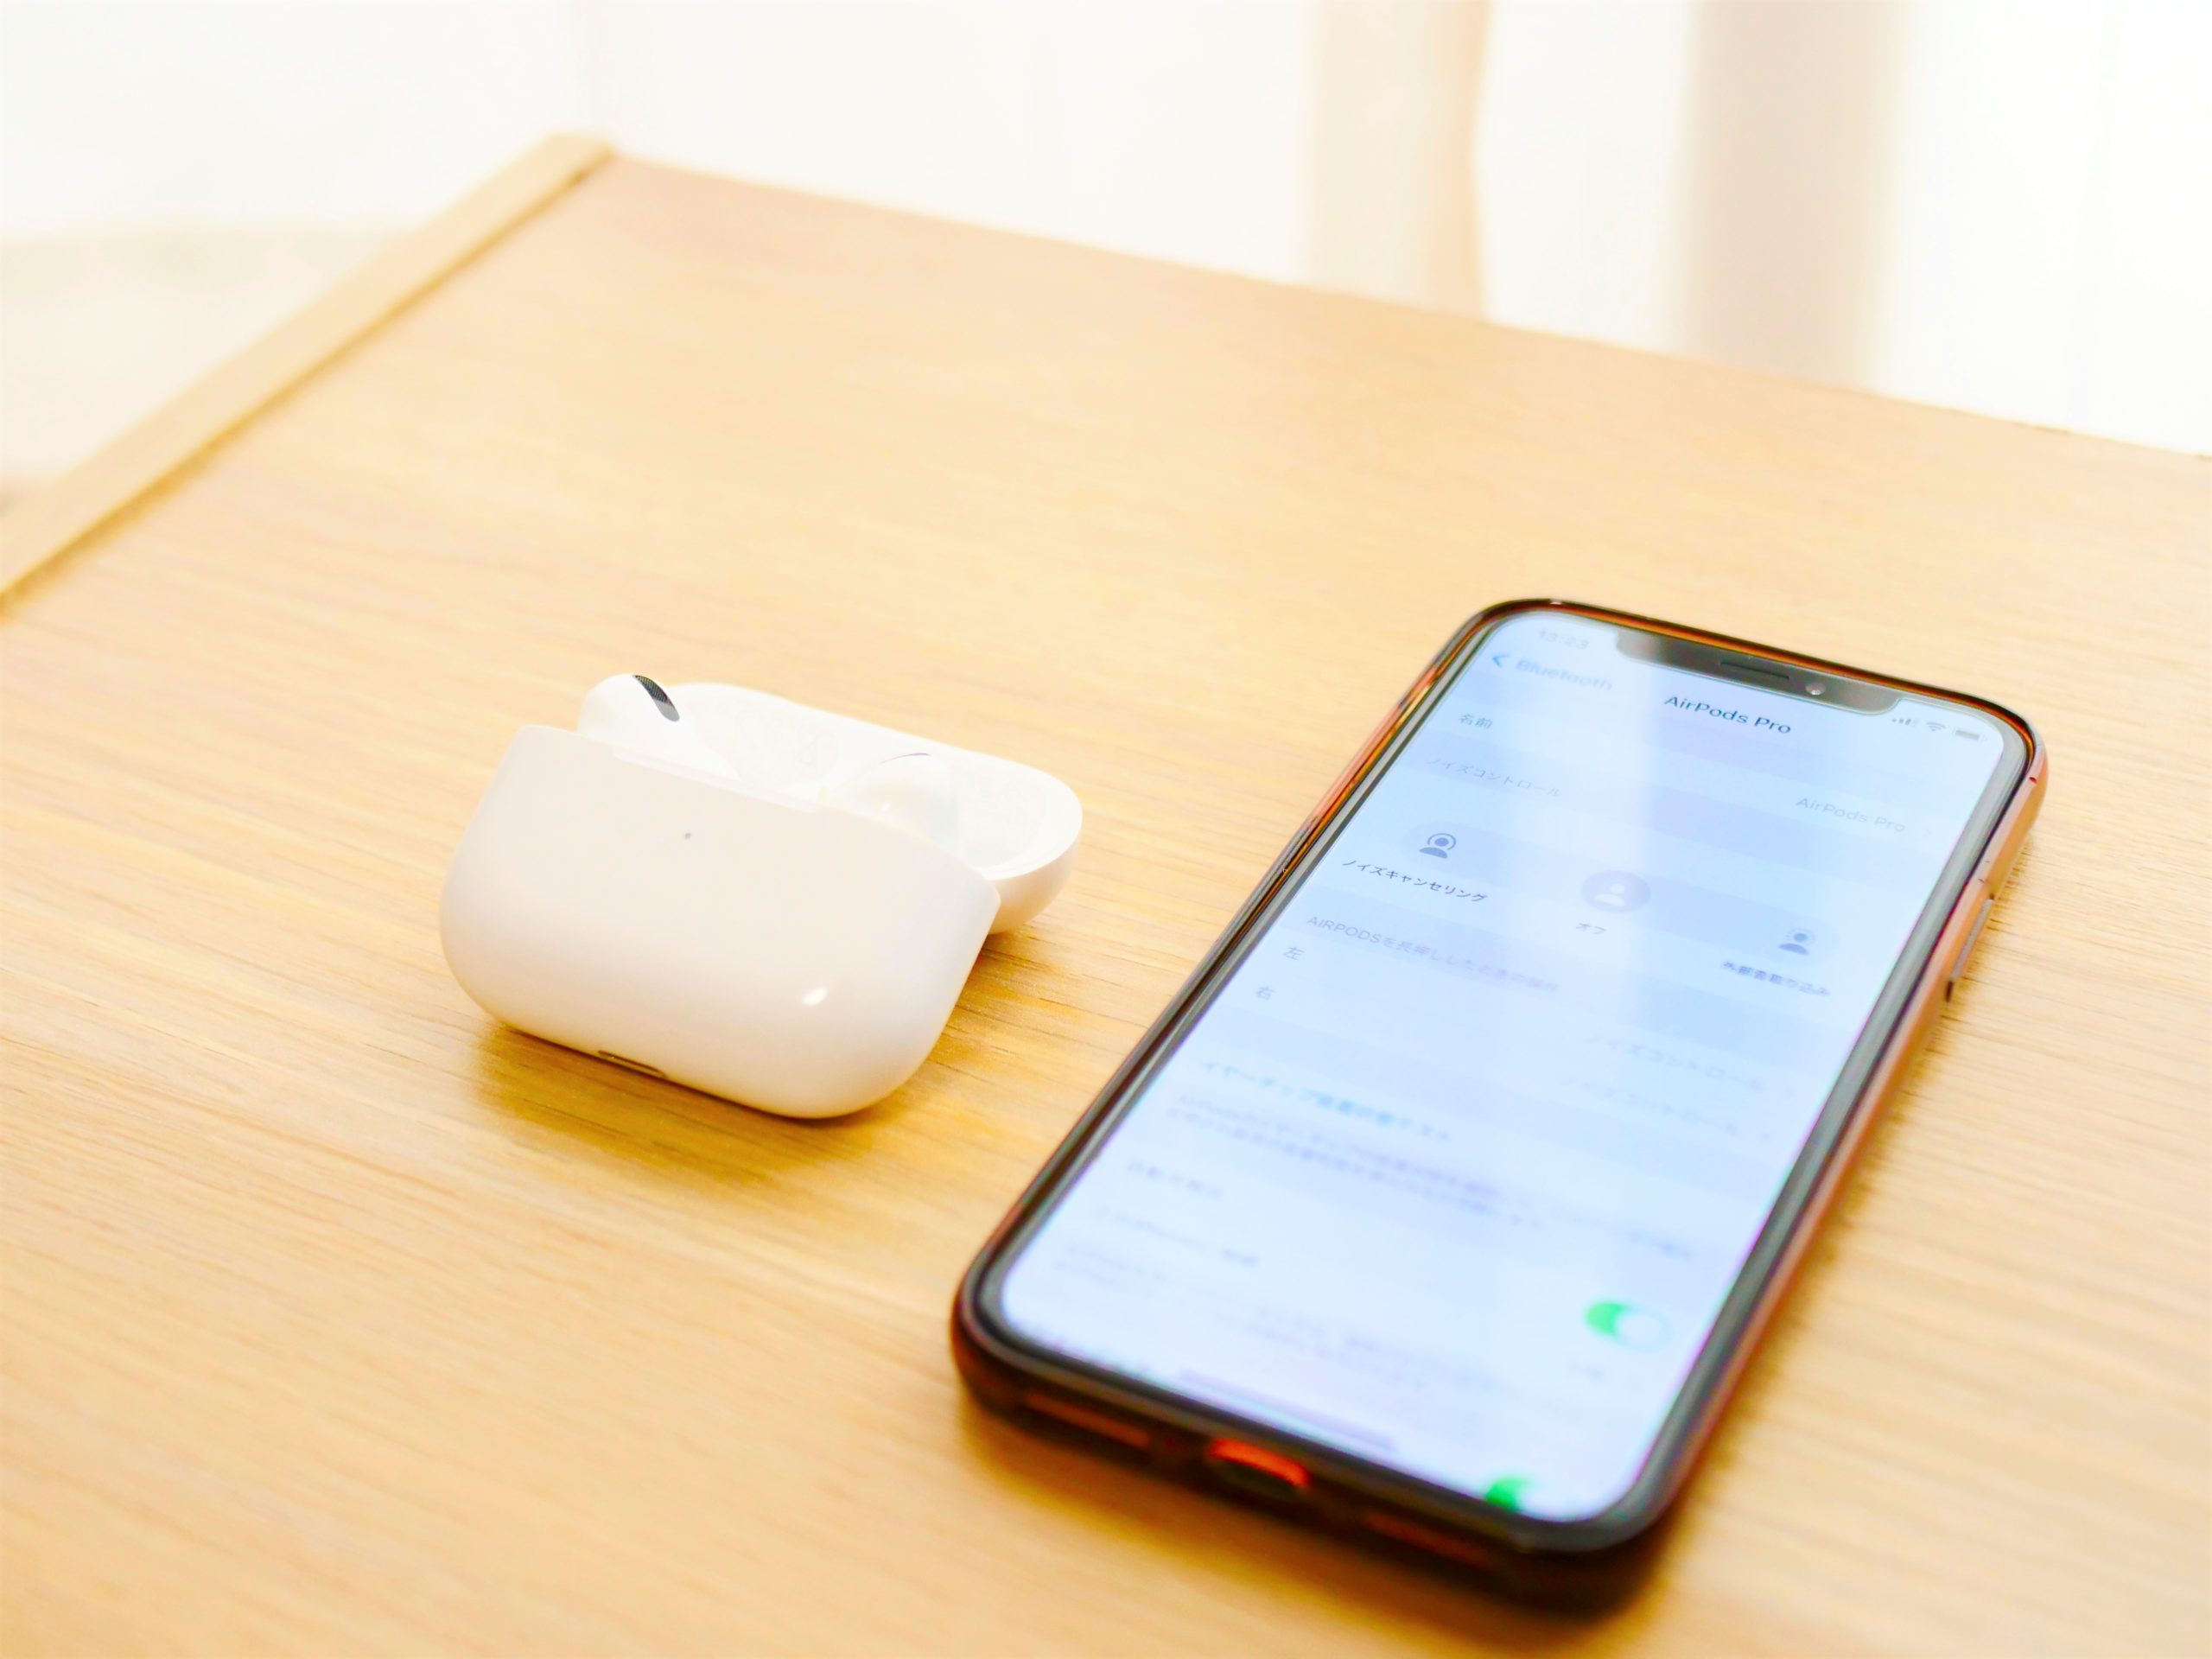 AirPods Proアップデート